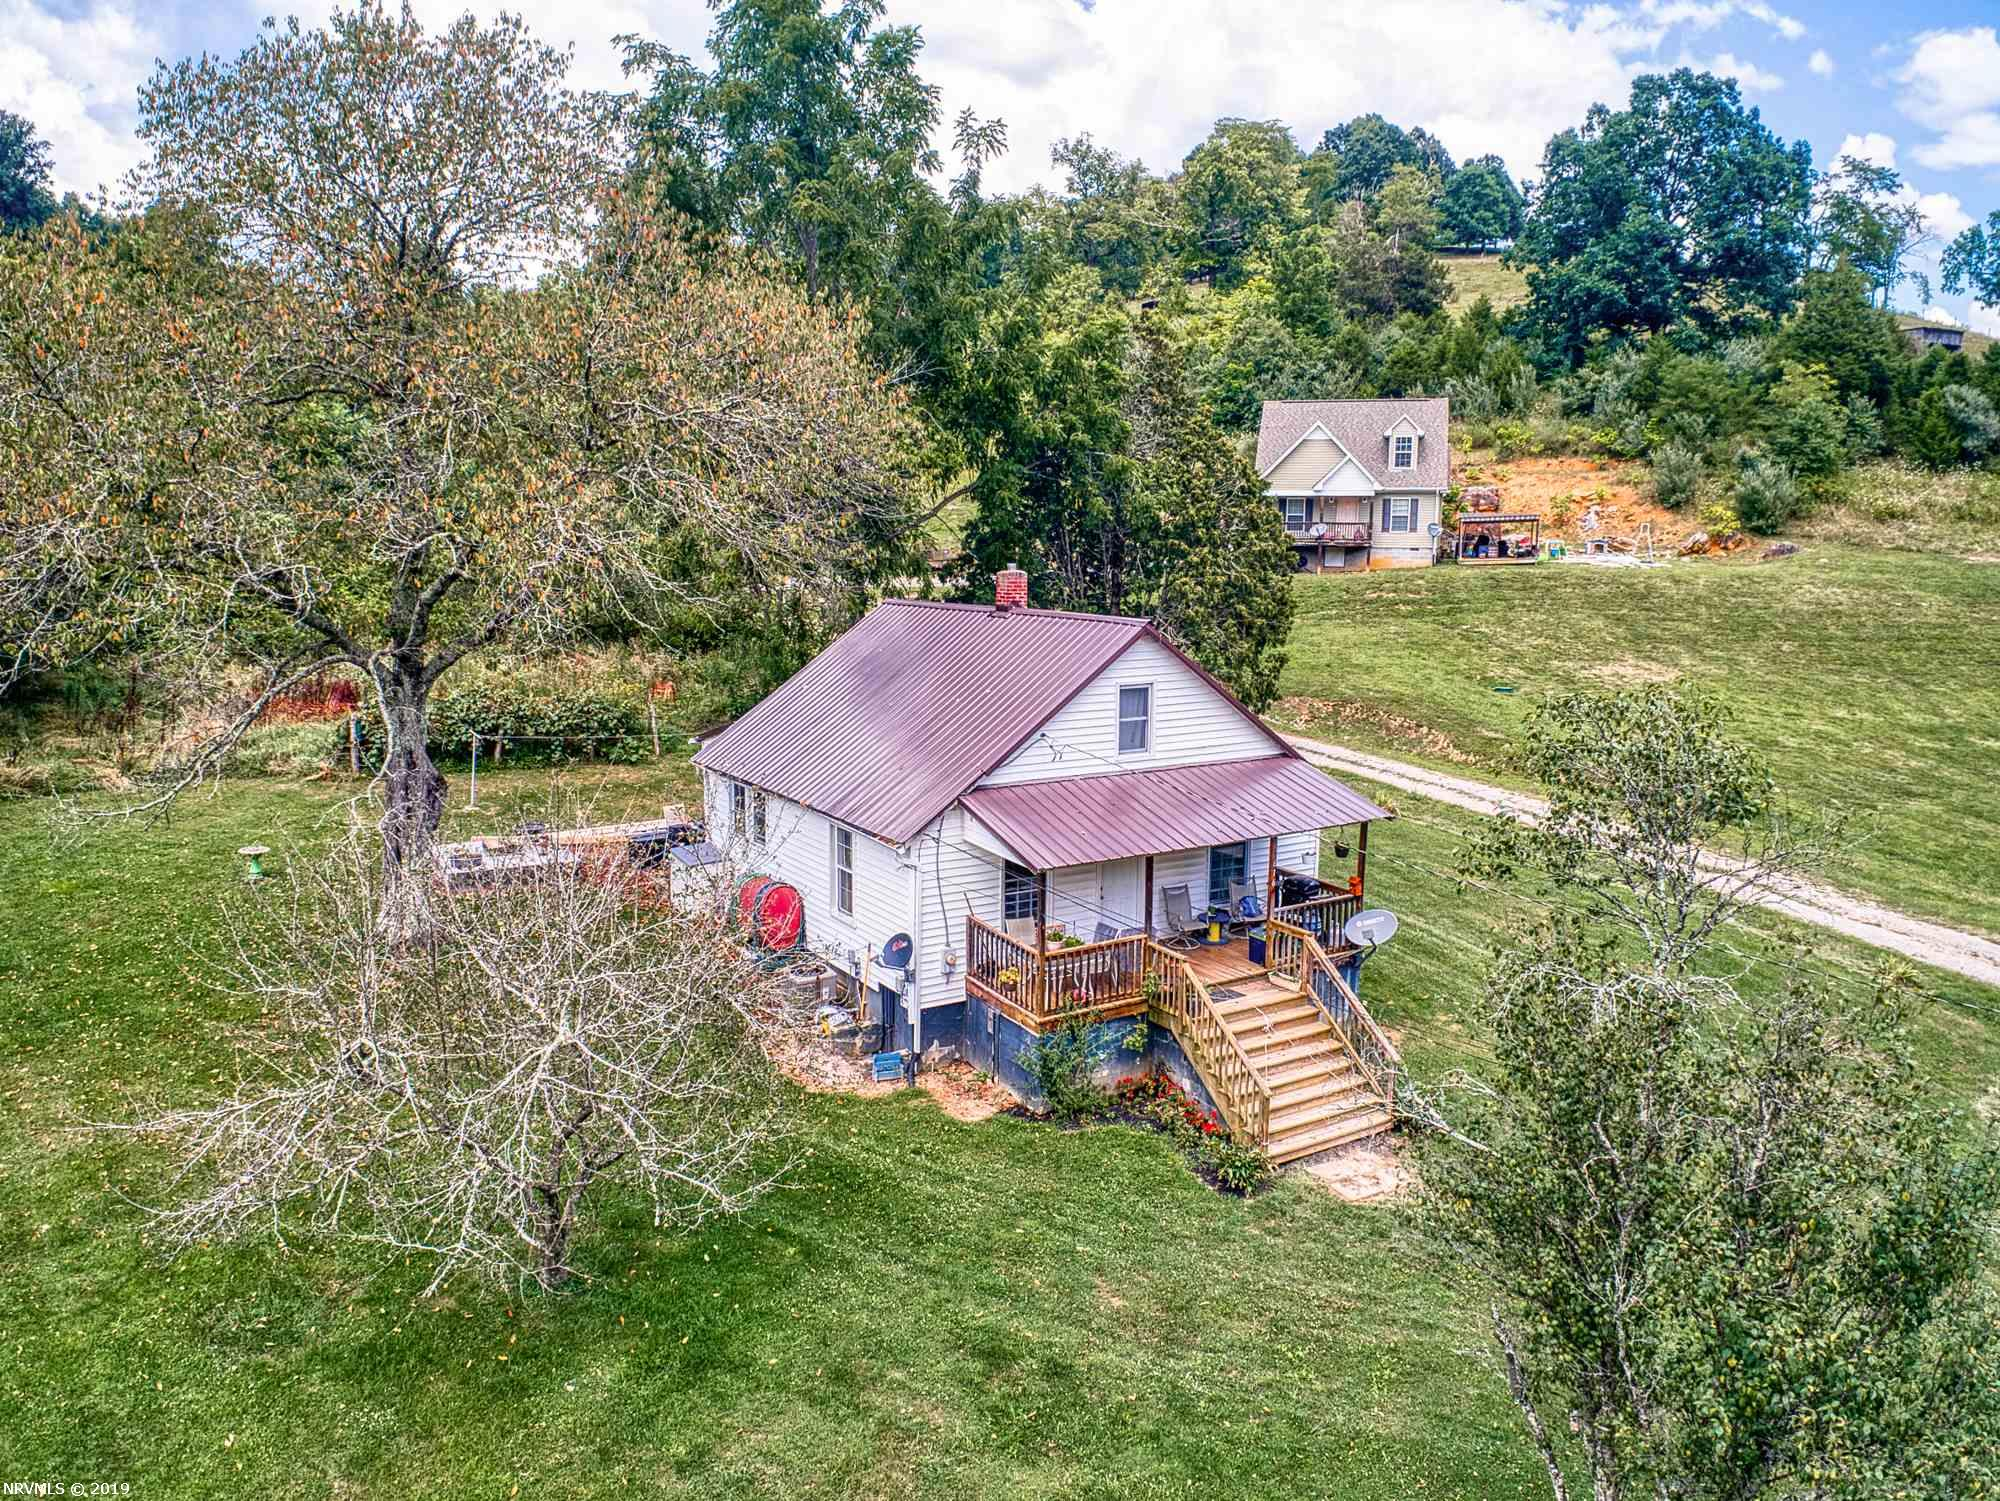 Looking to expand your rental portfolio or a first time home buyer?  This 3 bedroom 1 bath home is just 20 minutes to Blacksburg or Virginia Tech situated on just over 2 acres.